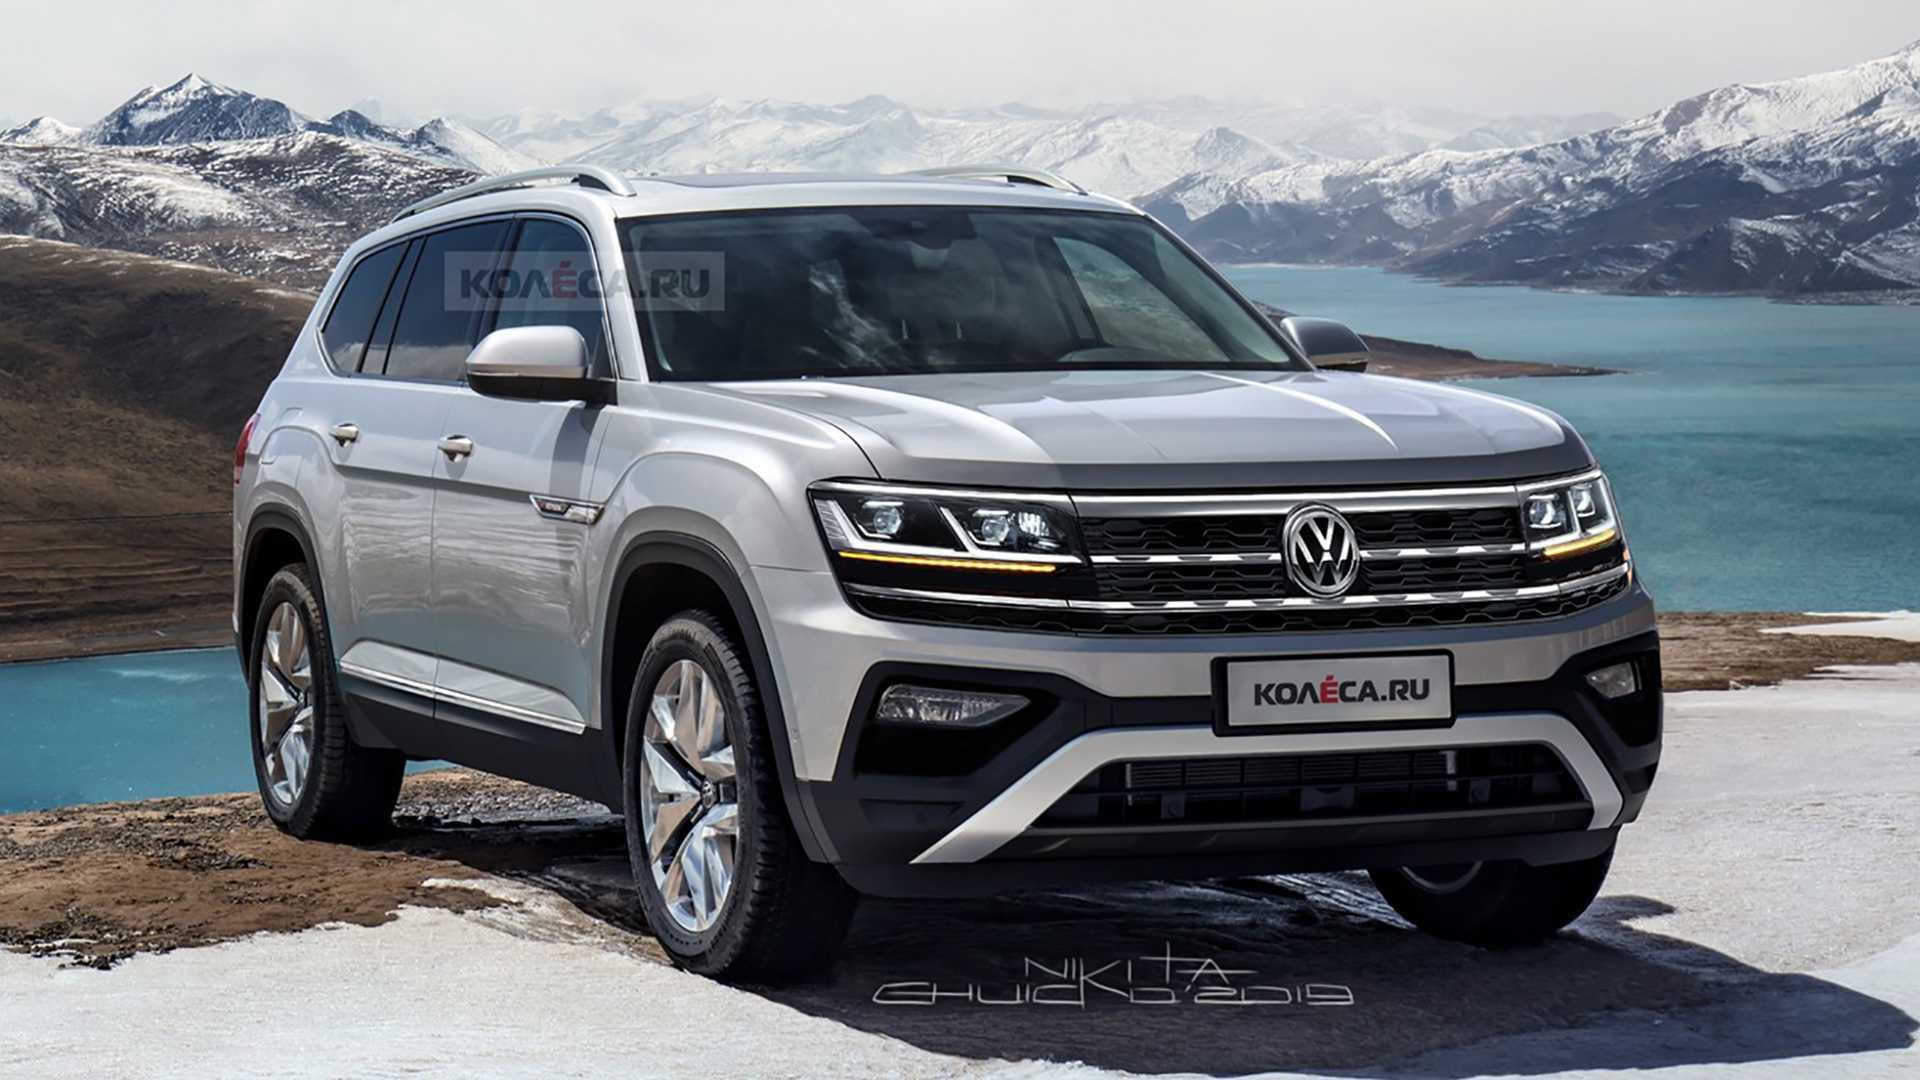 2021 VW Atlas Release Date, Changes, Review, And Specs >> 2021 Vw Atlas Imagined With Subtle Facelift